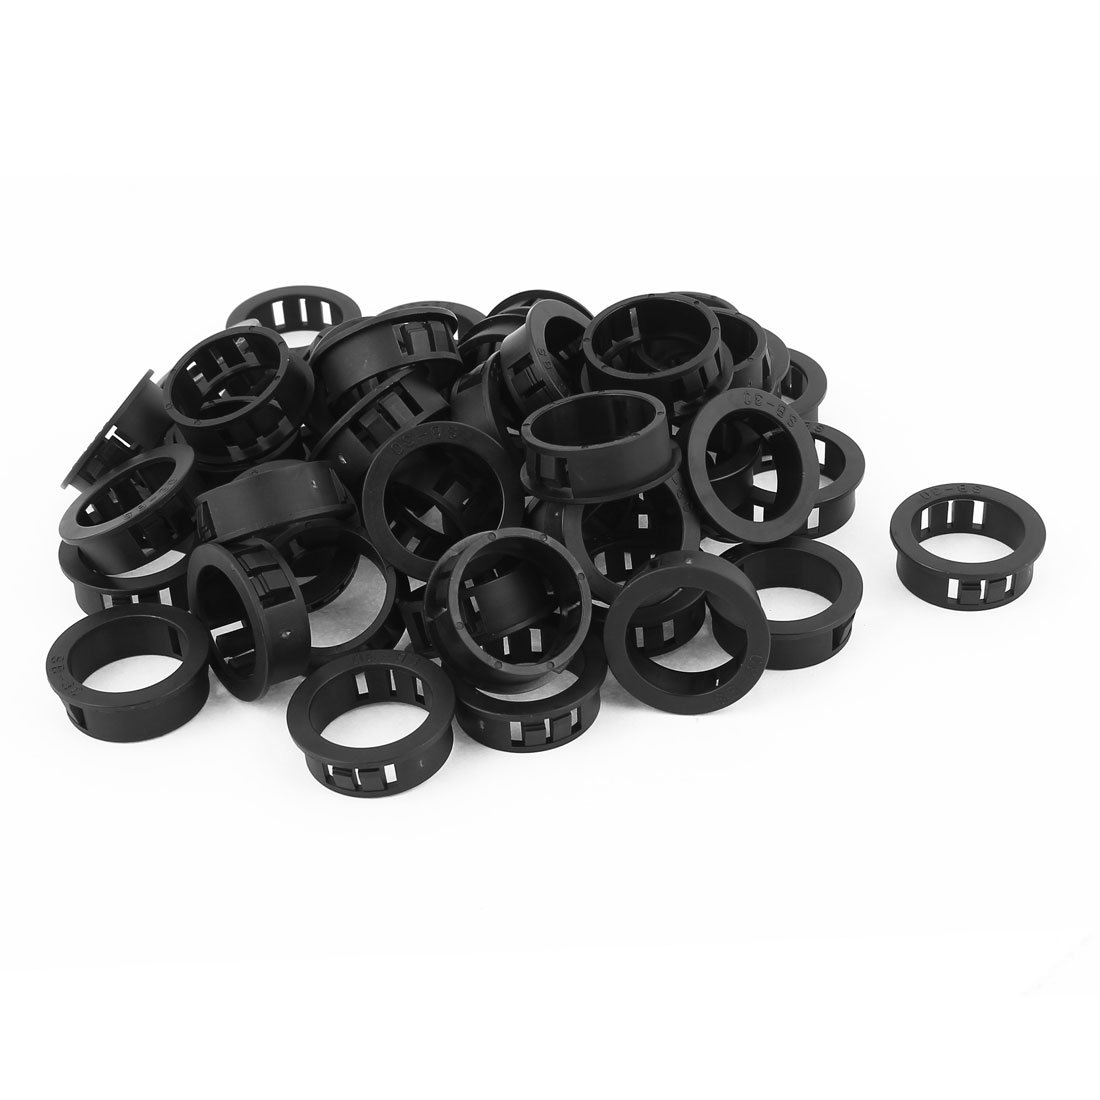 Plastic 30mm Cable Hose Snap Locking Bushing Protective Grommet 50Pcs Black